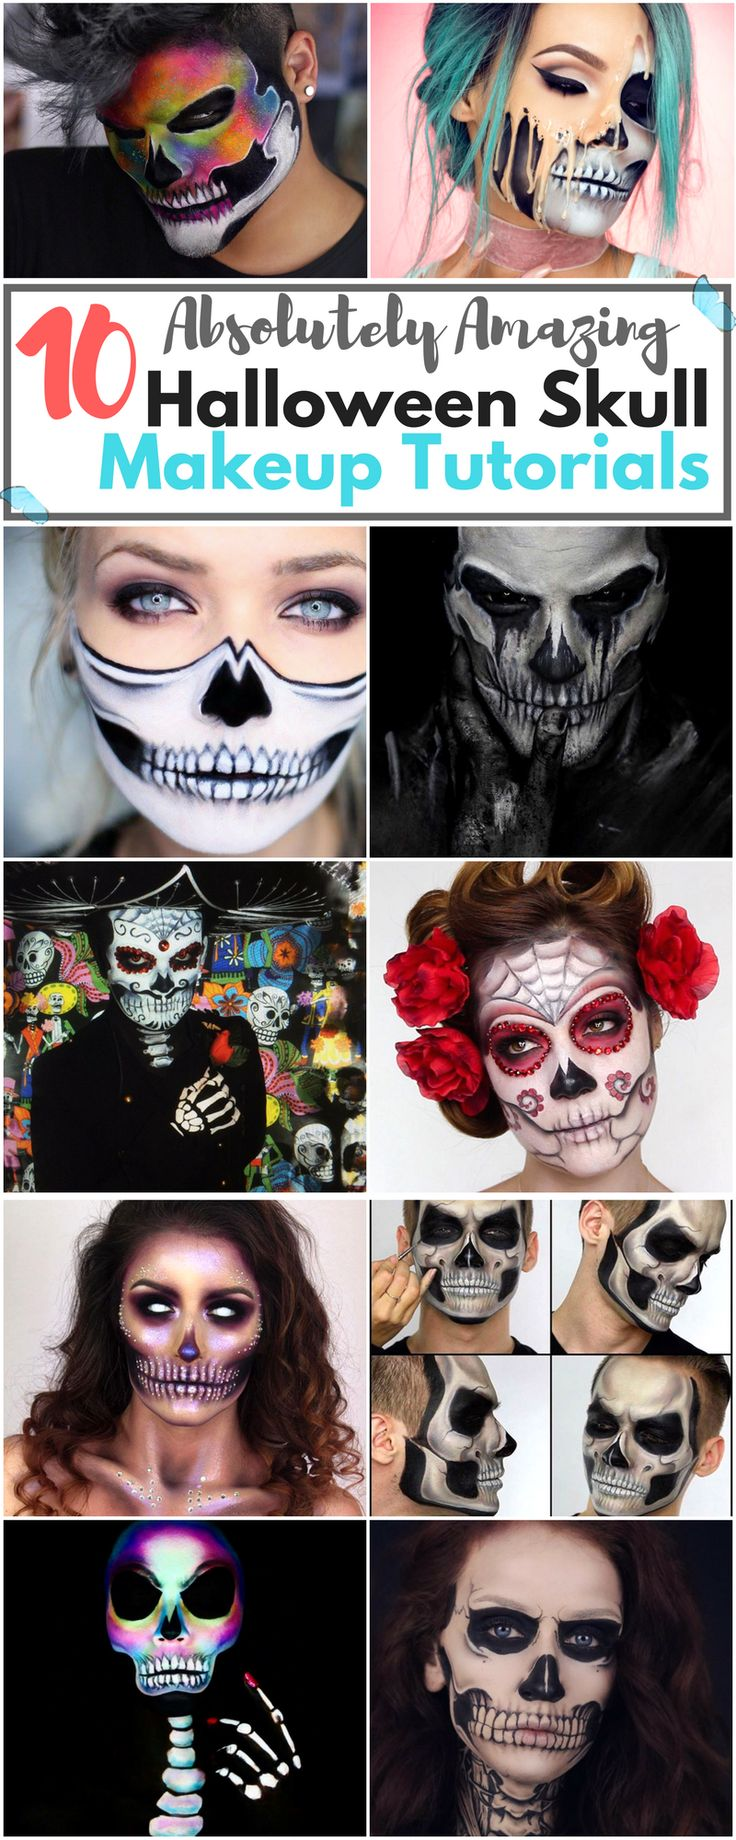 Do you need a Halloween costume, without the costume? We got your back! These 10 absolutely amazing Halloween Skull Makeup Tutorials are so good, you won't need anything else! Perfect for a budget-friendly Halloween!